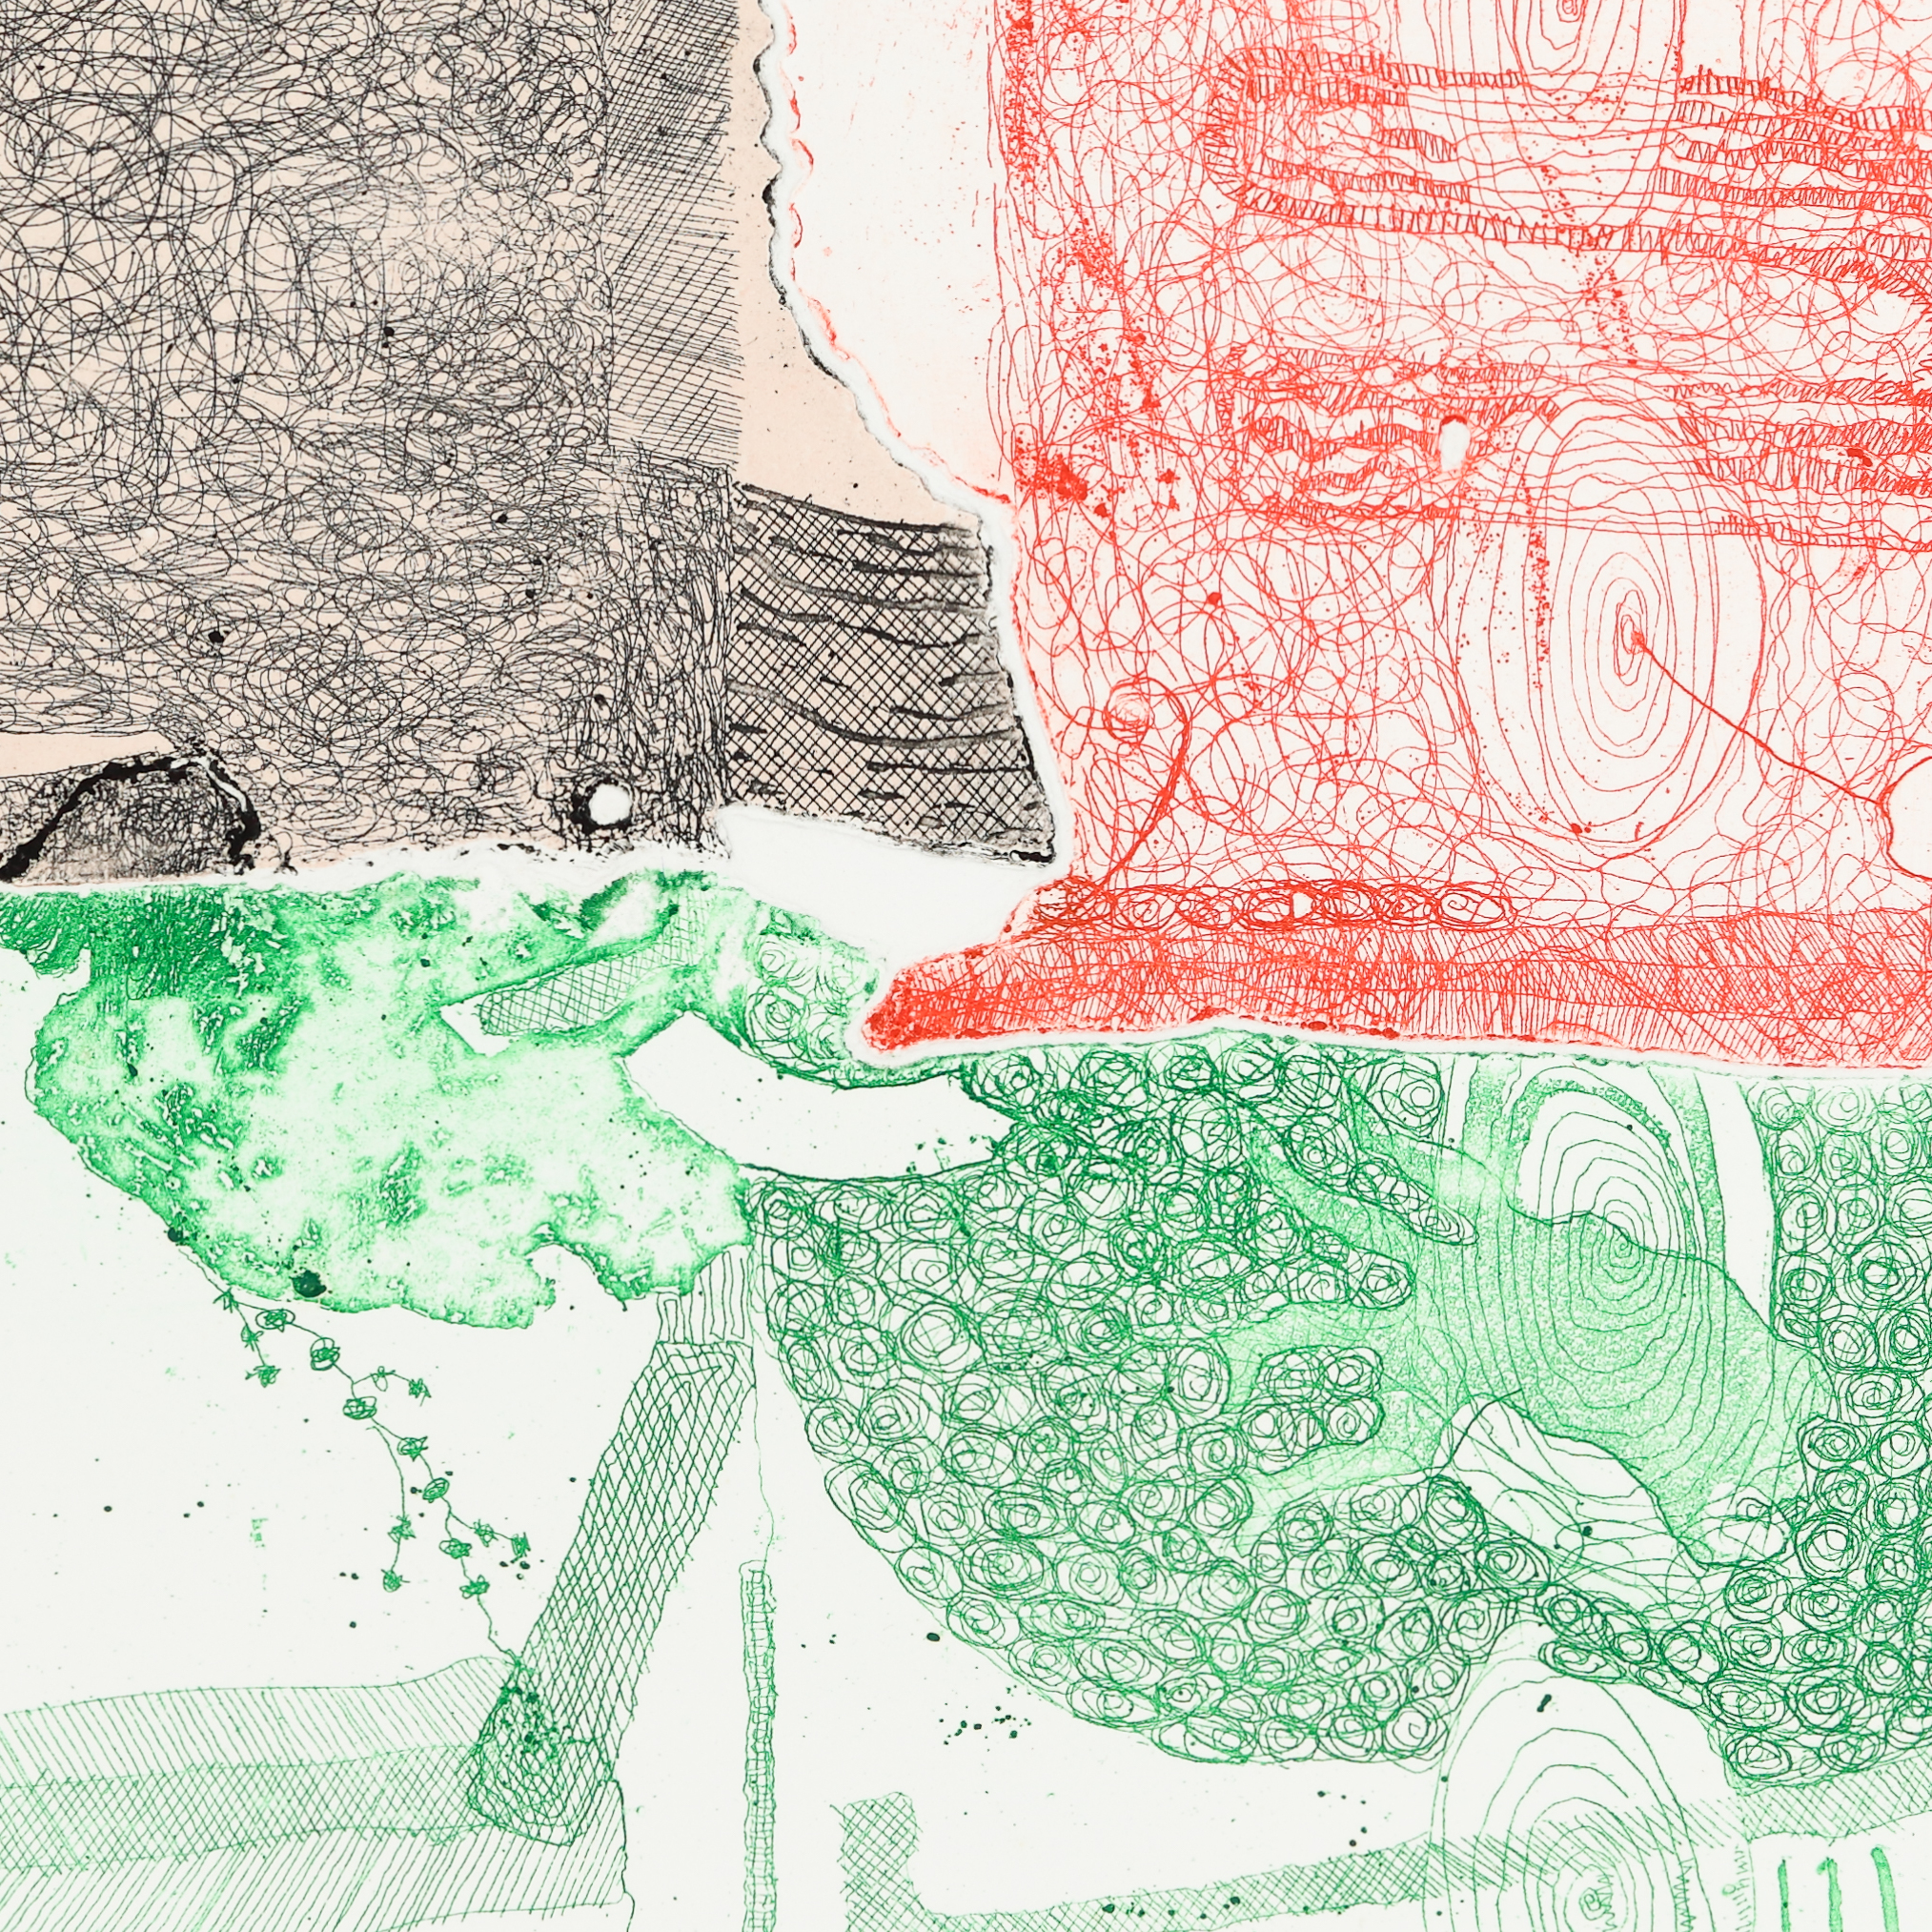 Close up section of a semi-abract line etching using delicate green, red and black lines.